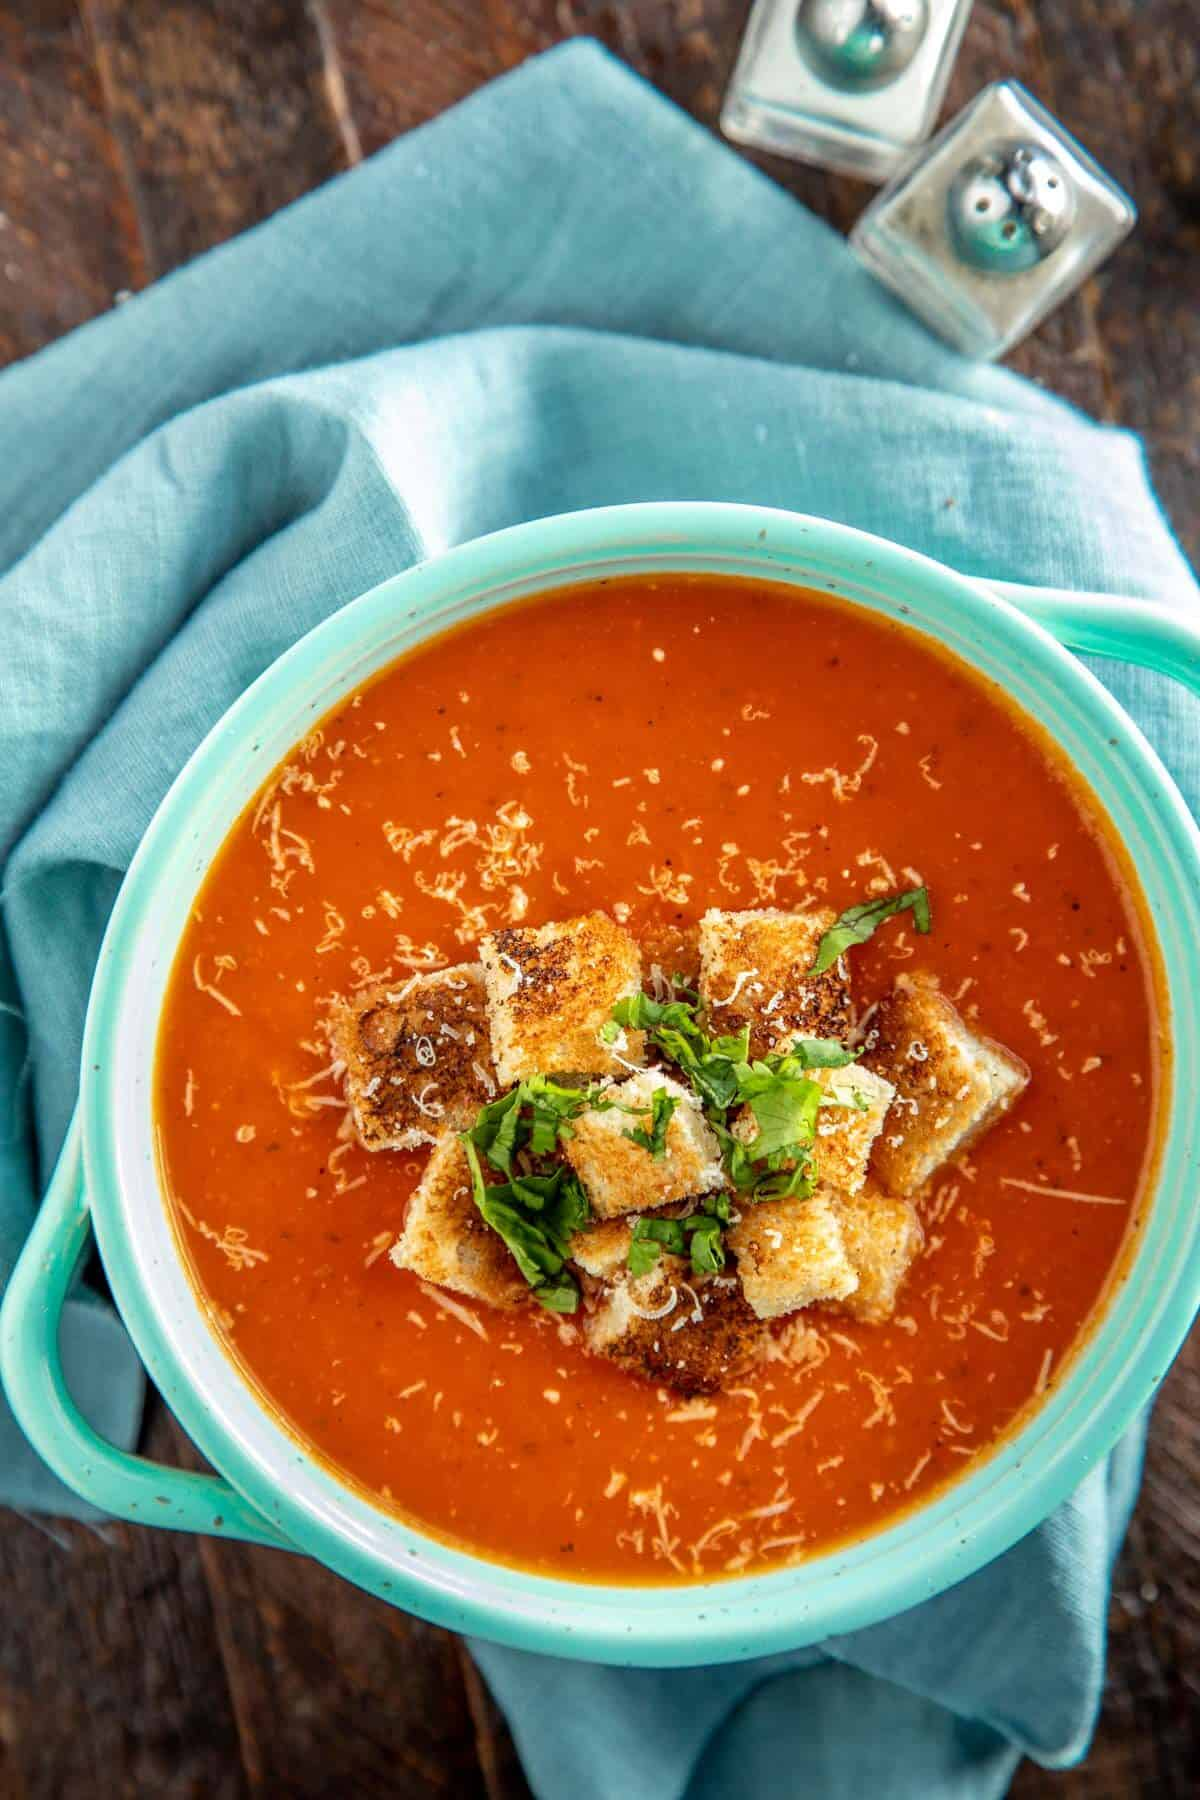 tomato soup in an aqua bowl with croutons